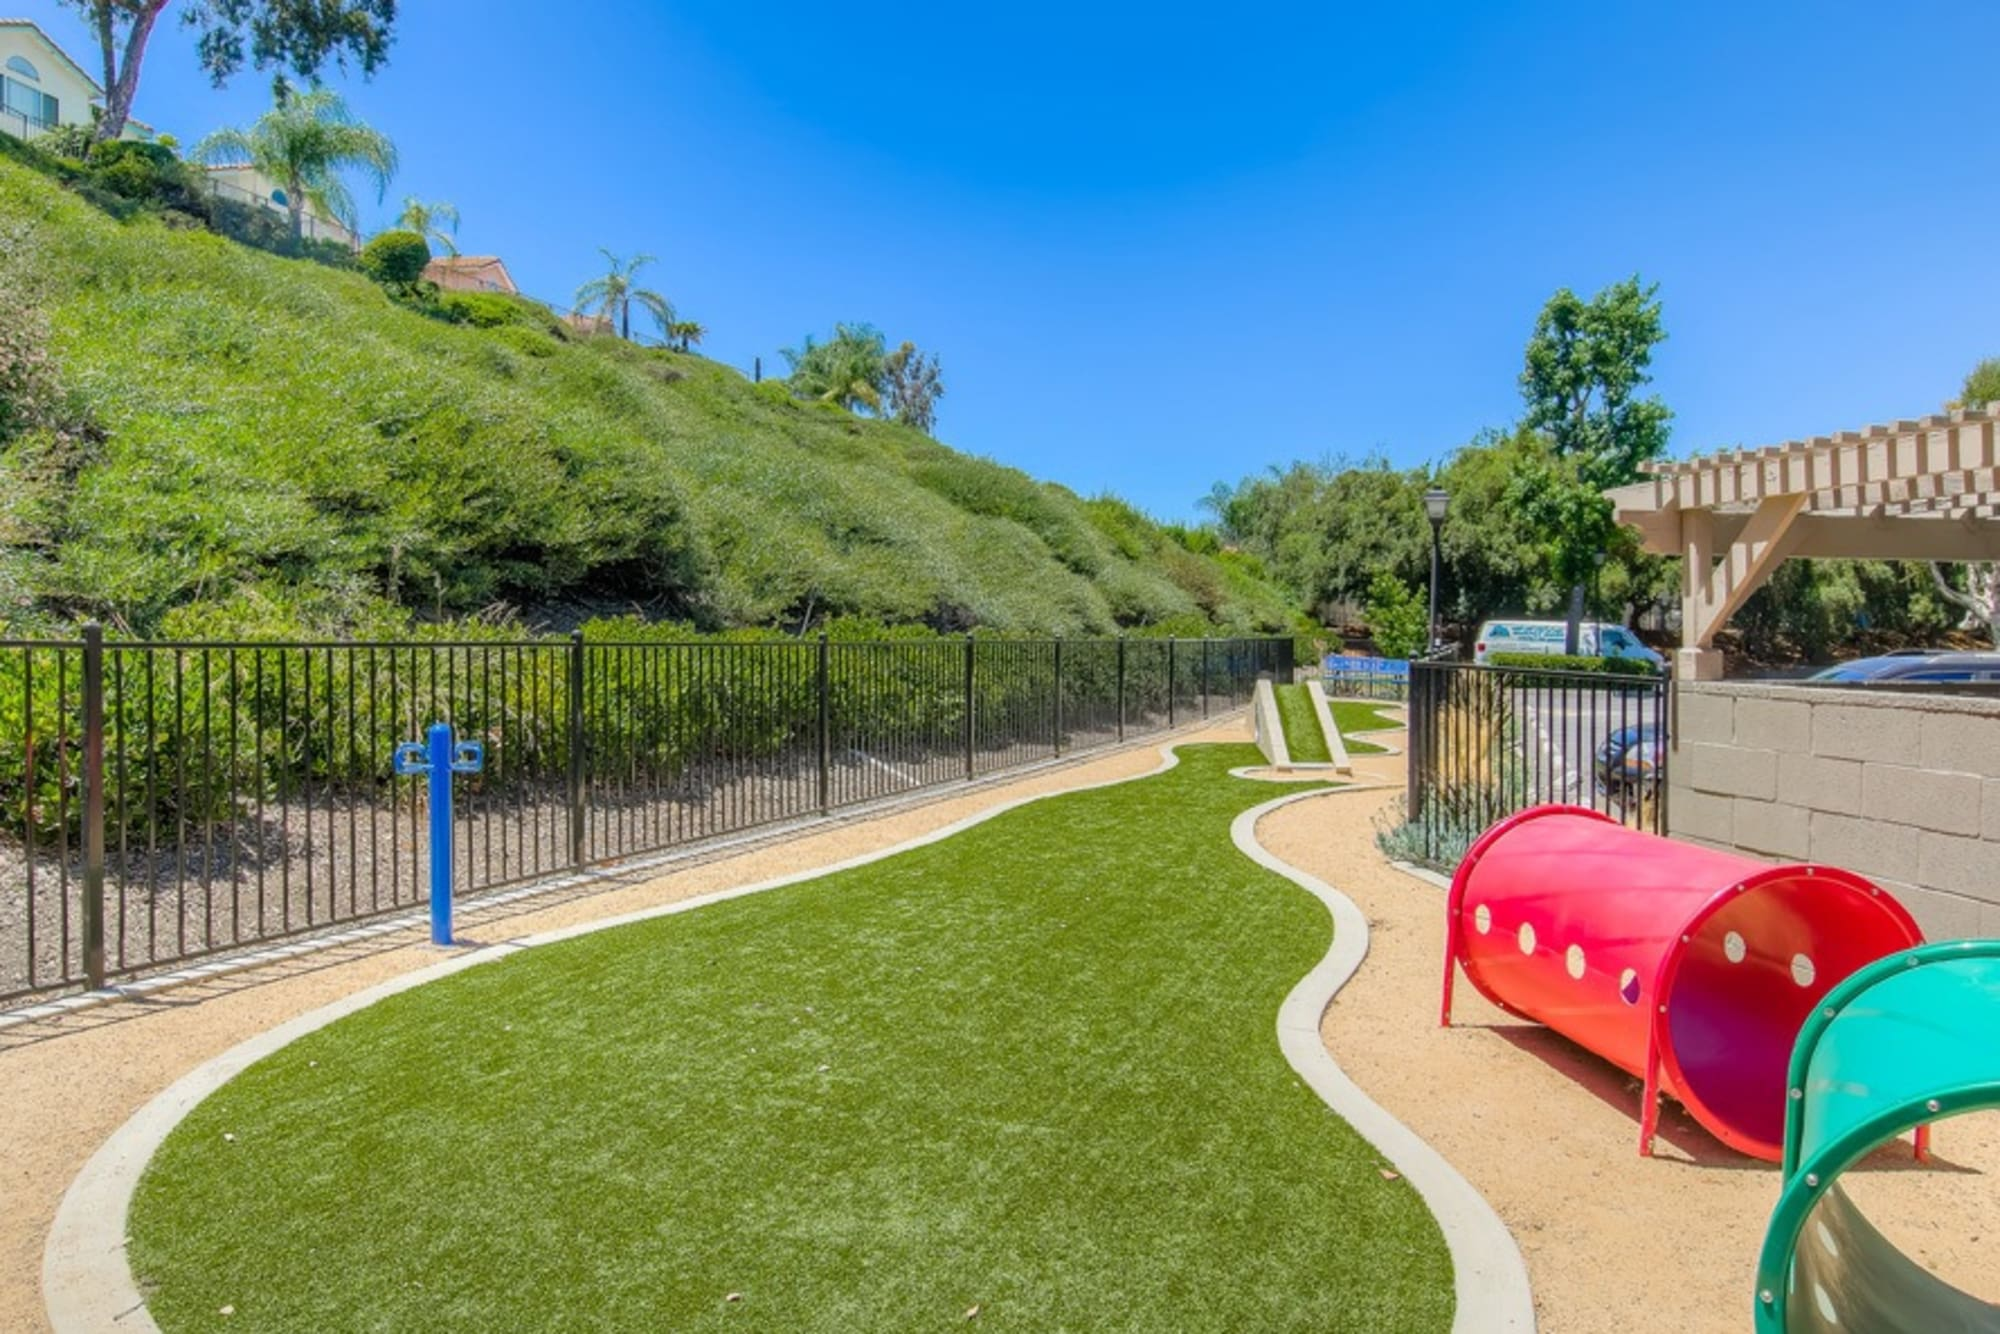 Off-leash dog park at Village Oaks in Chino Hills, California